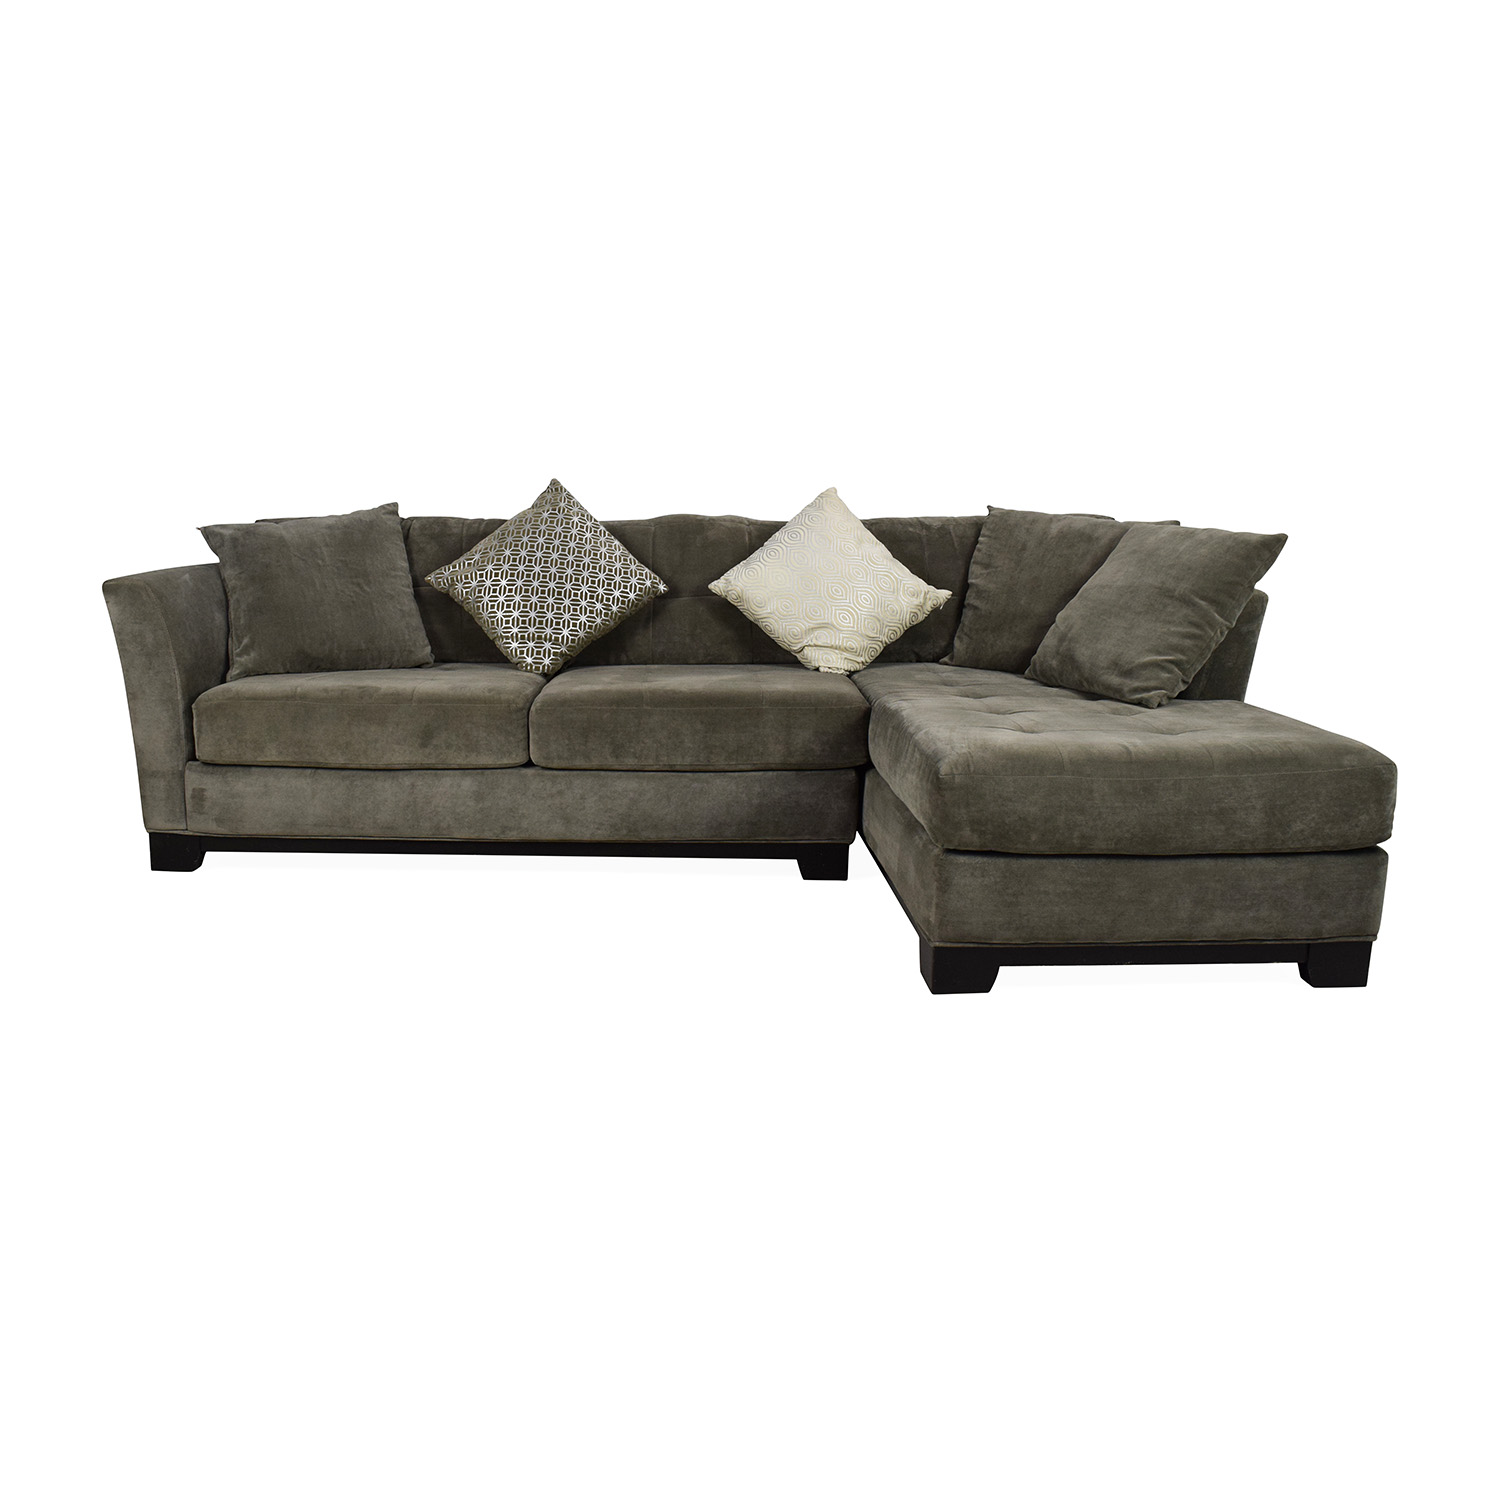 80% OFF Roche Bobois Roche Bobois Brown Leather Sectional Sofas